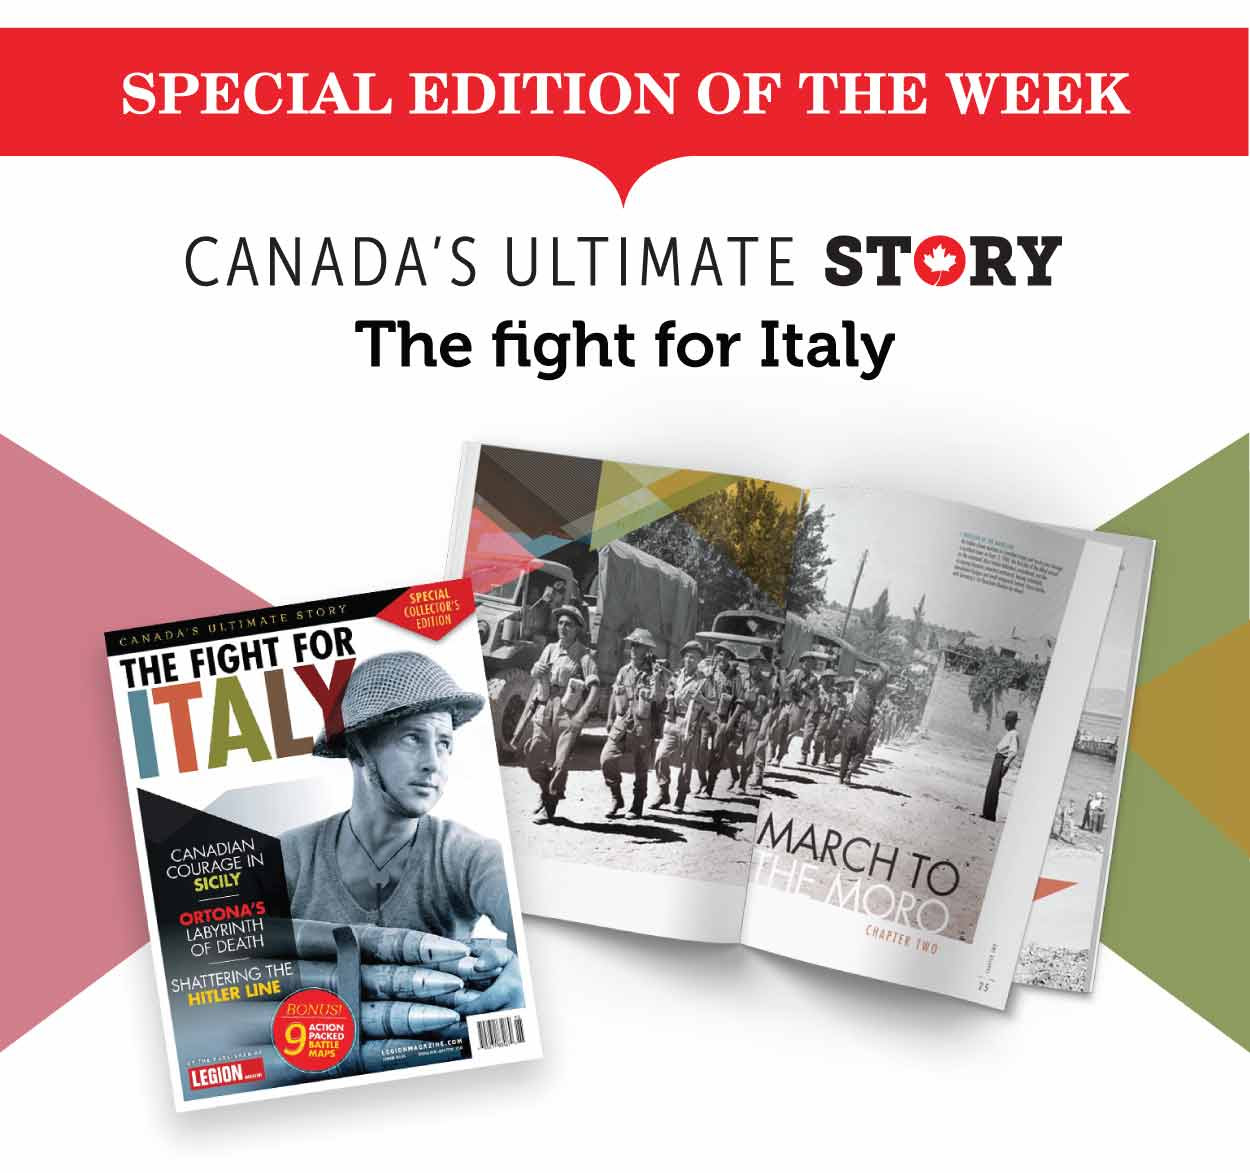 The fight for Italy